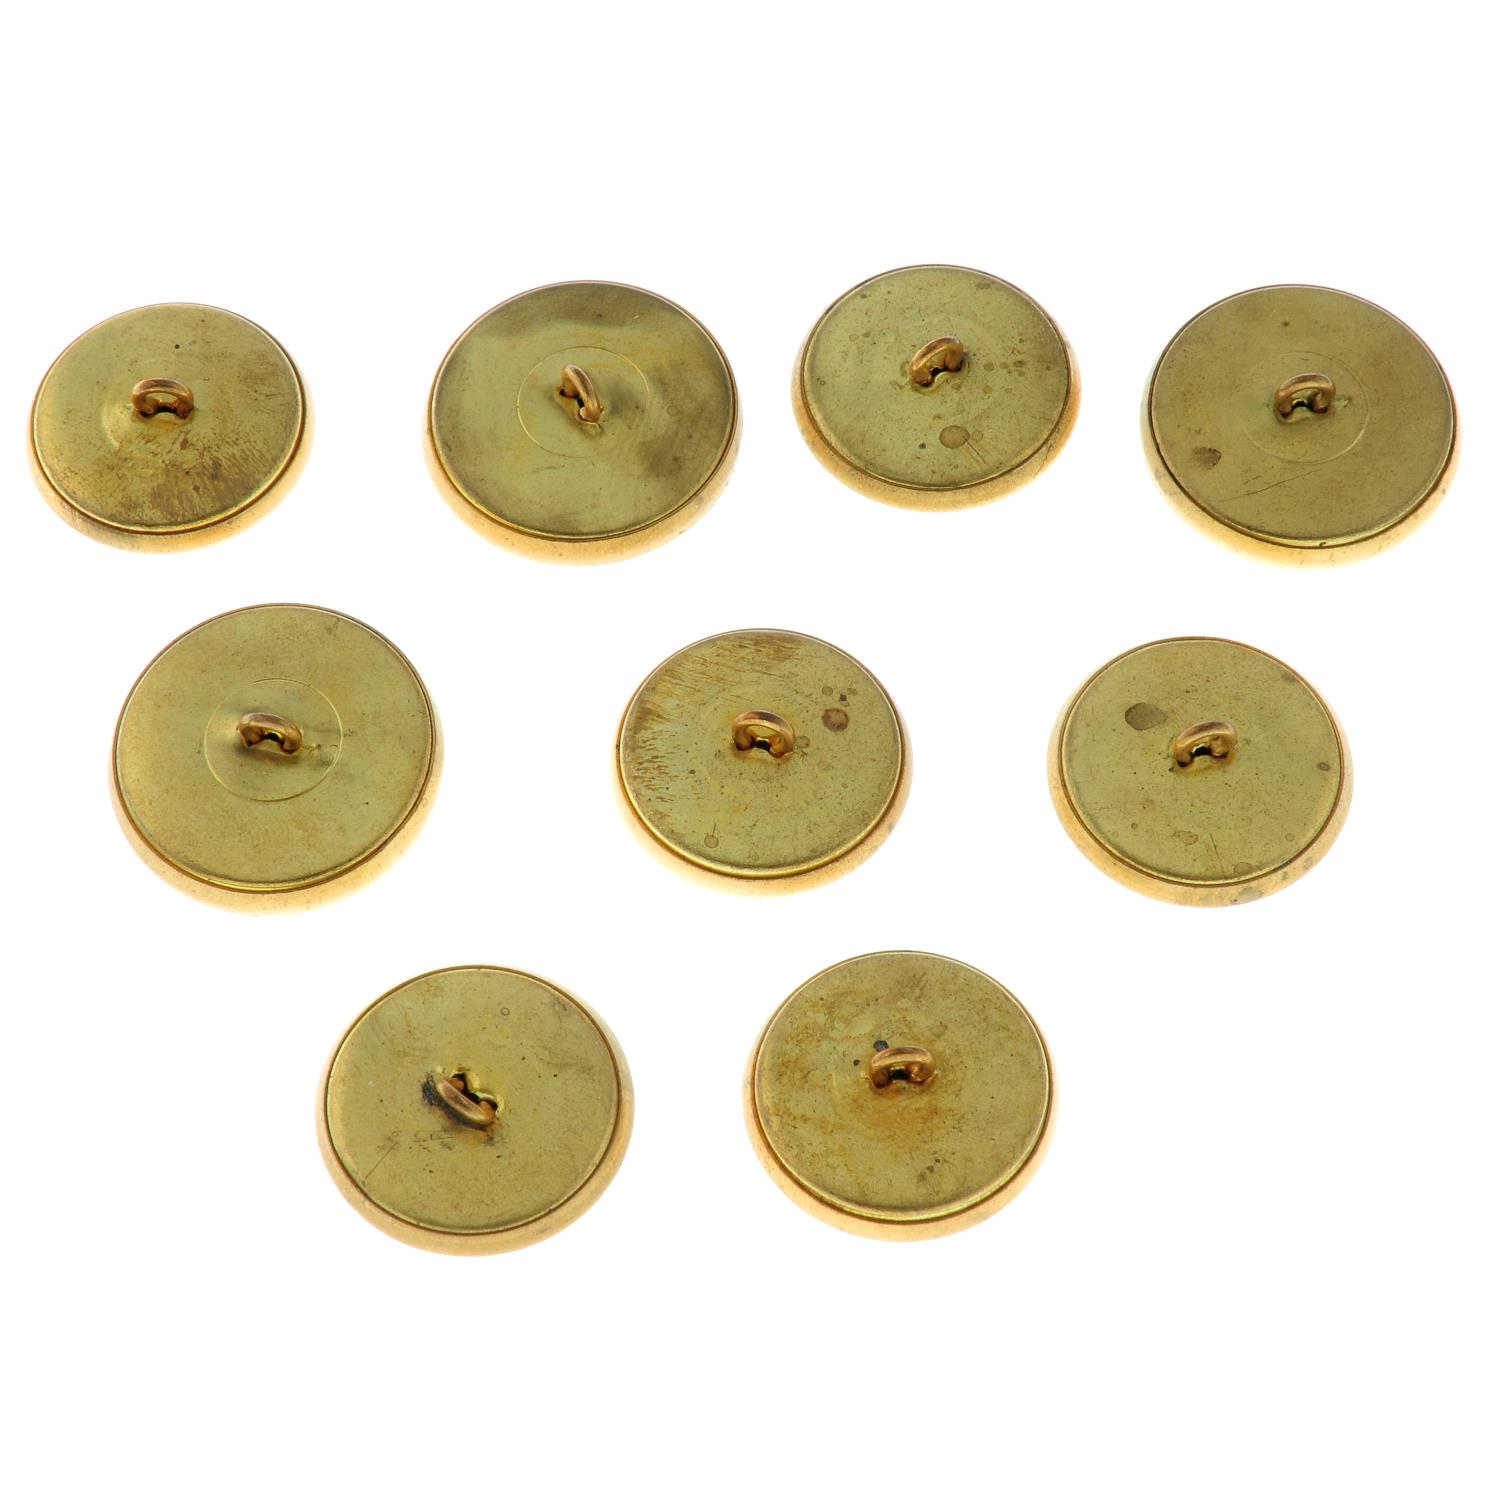 Nine textured monogram buttons, by Yves Saint Laurent.Lengths 2.7 and 3cms. - Image 3 of 3